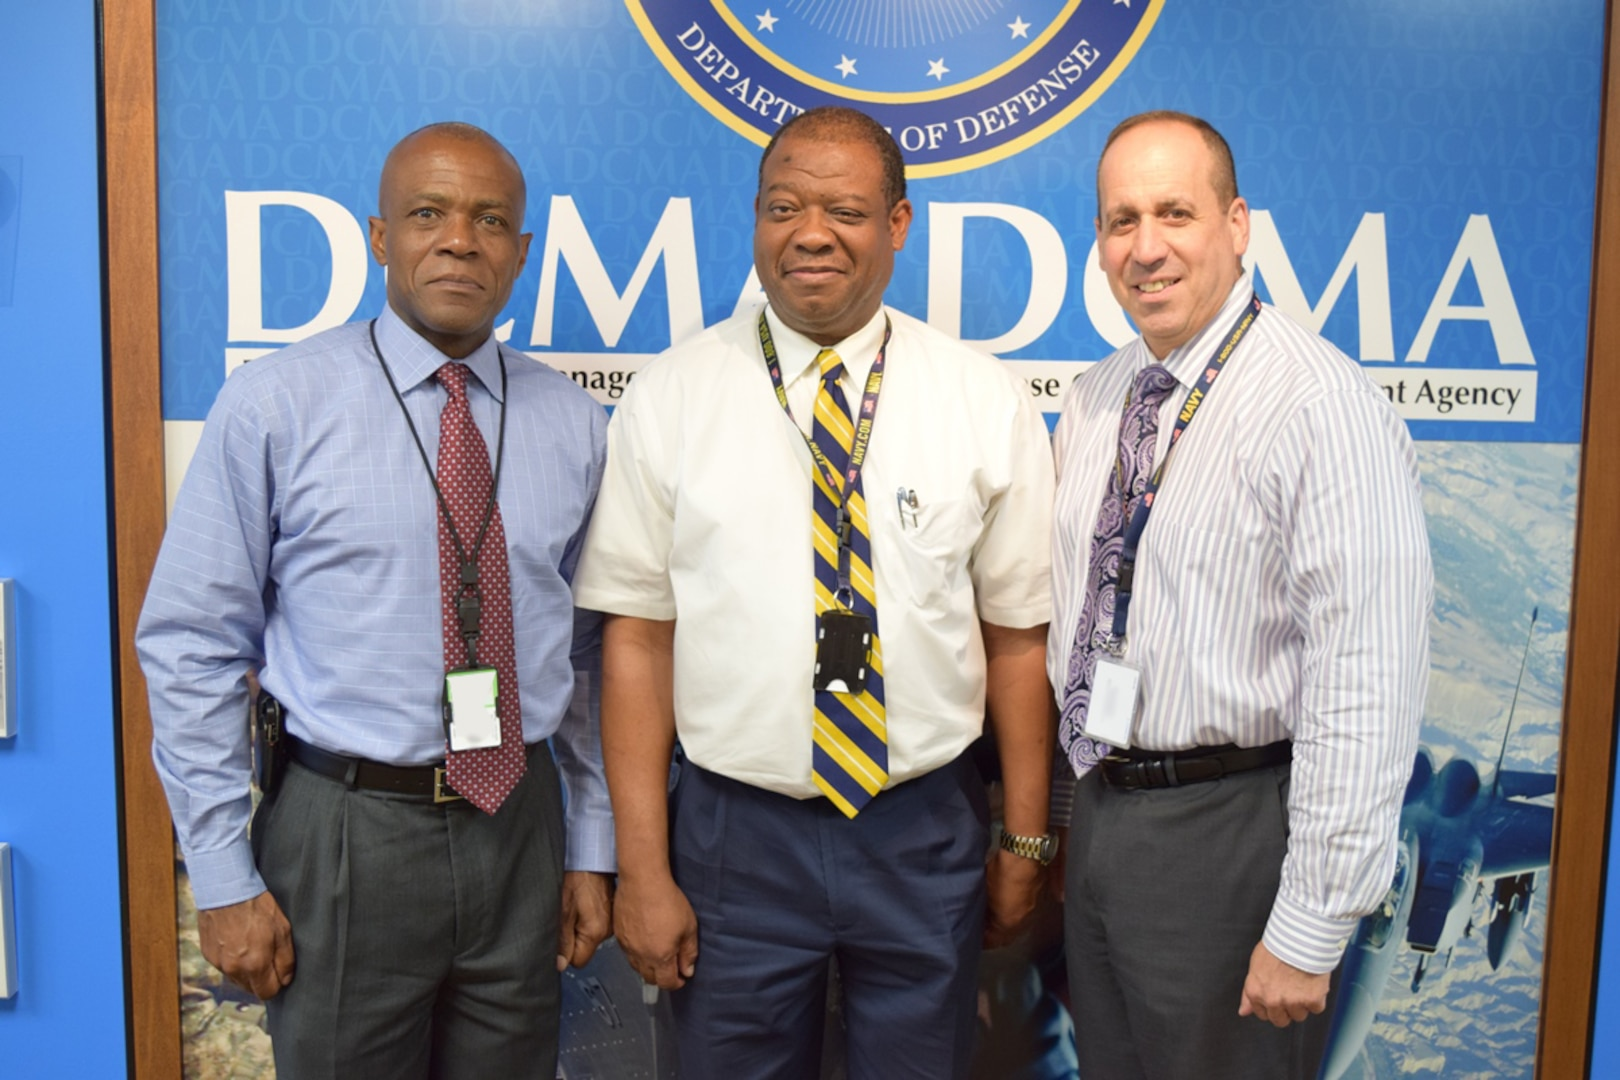 Defense Contract Management Agency Garden City Director Neil Mintz, right, appointed Joseph Cox (middle), Quality Assurance group leader, and Henry Stewart, Quality Assurance team leader, to develop a new leadership training program for supervisors at the contract management office. (DCMA photo by Justin Zaun)